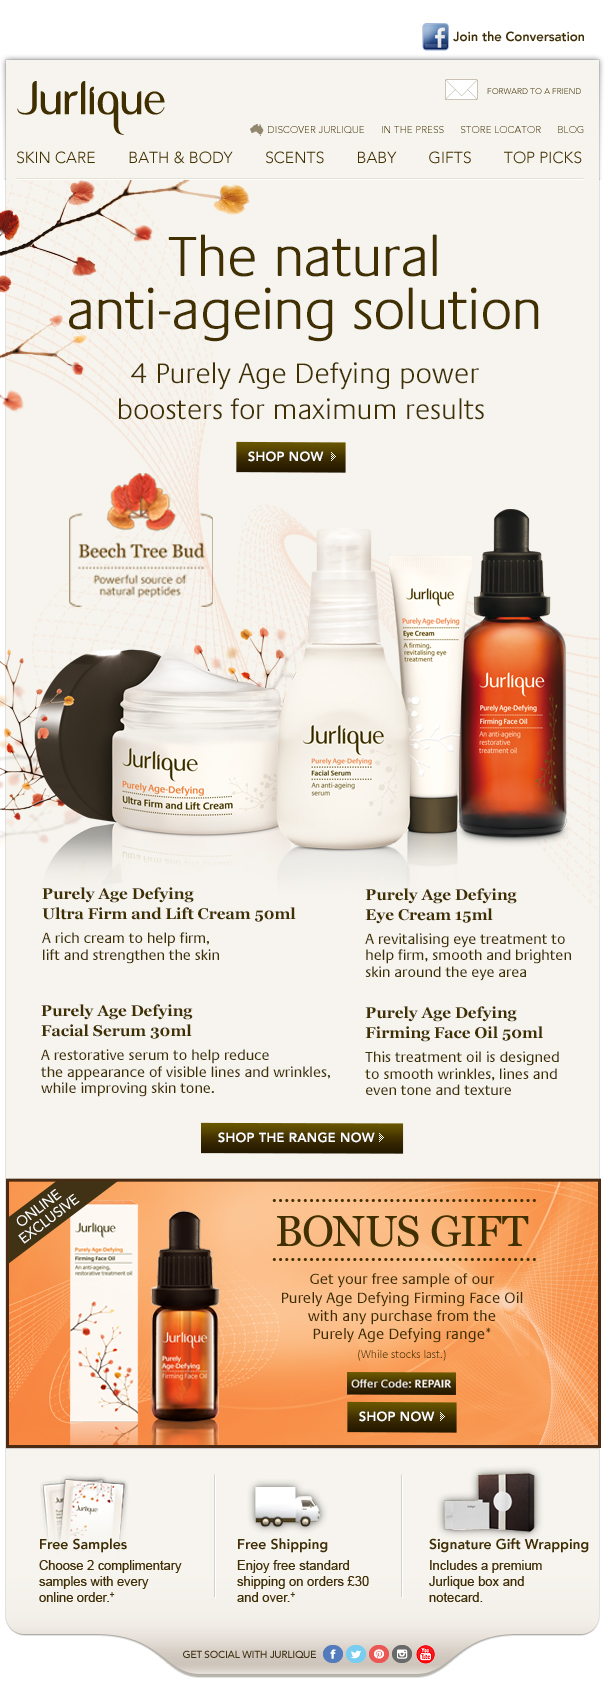 Jurlique anti-ageing